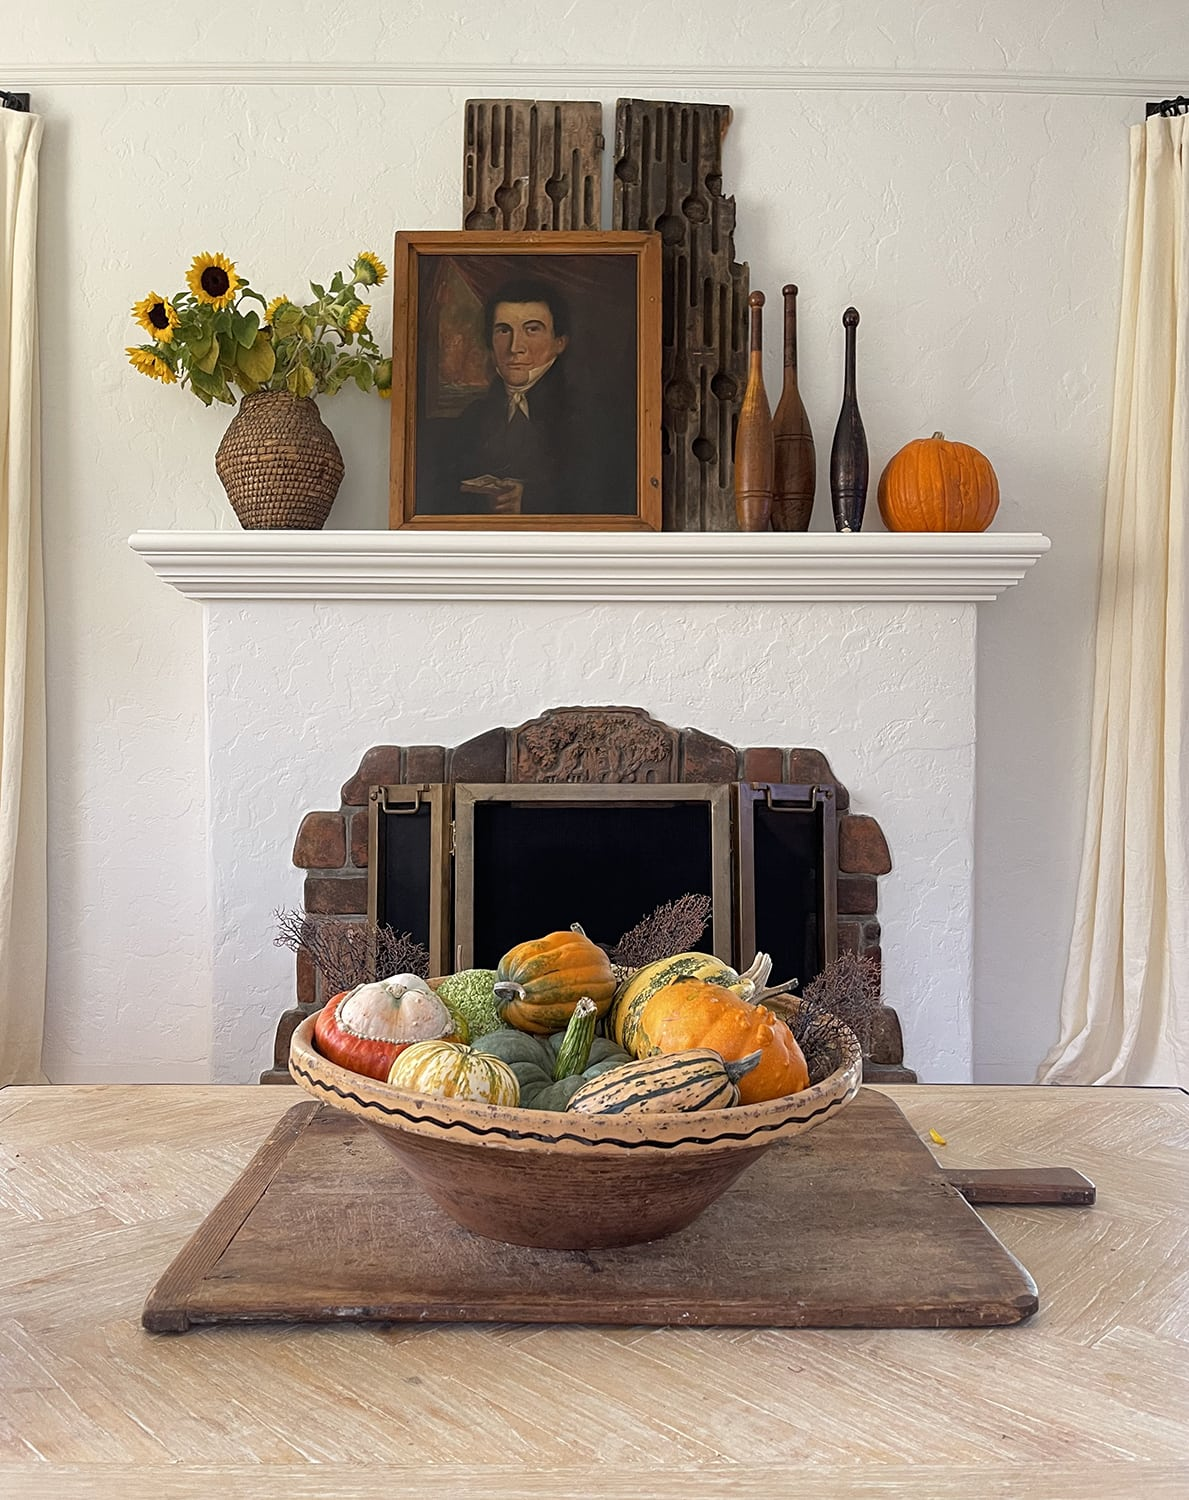 cindy hattersley's fall mantle with pumpkins